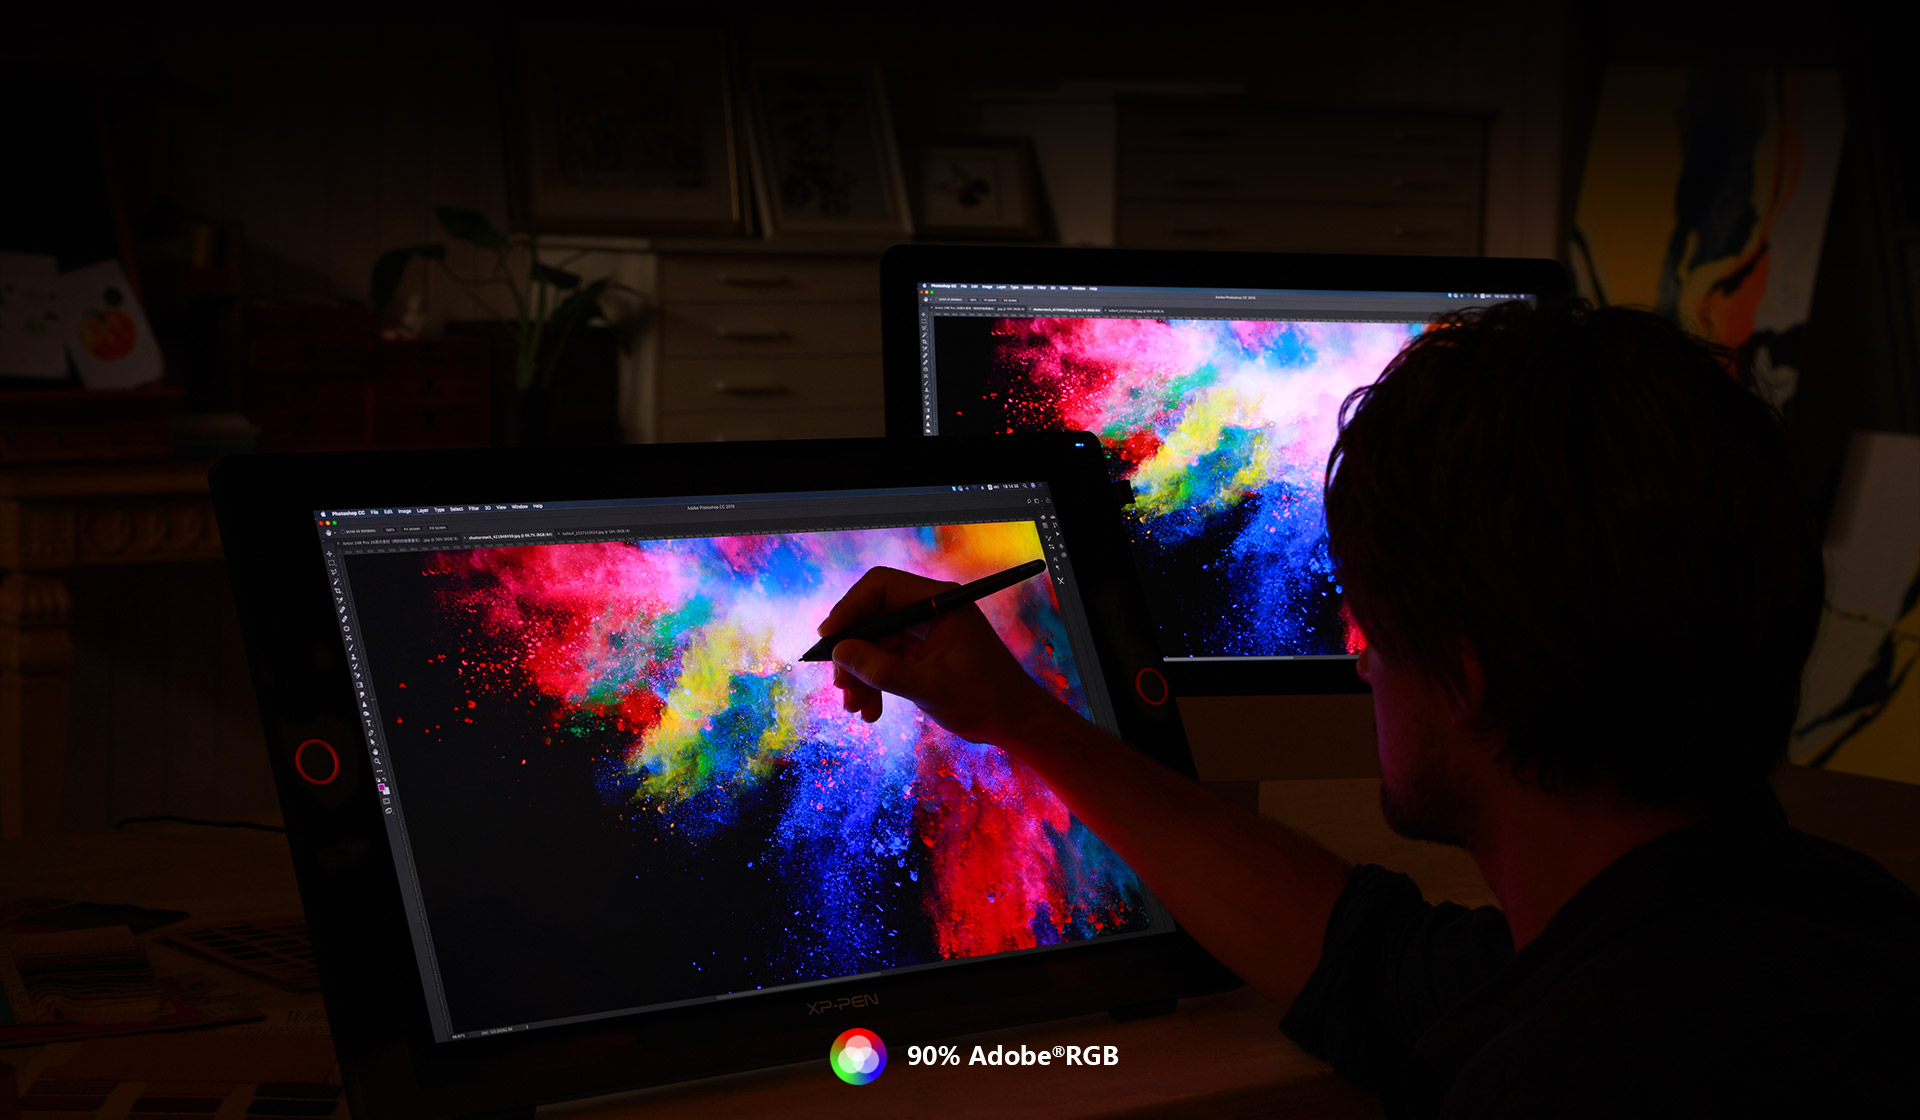 Fuel your creativity with XP-Pen Artist 24 Pro Graphic Pen Display